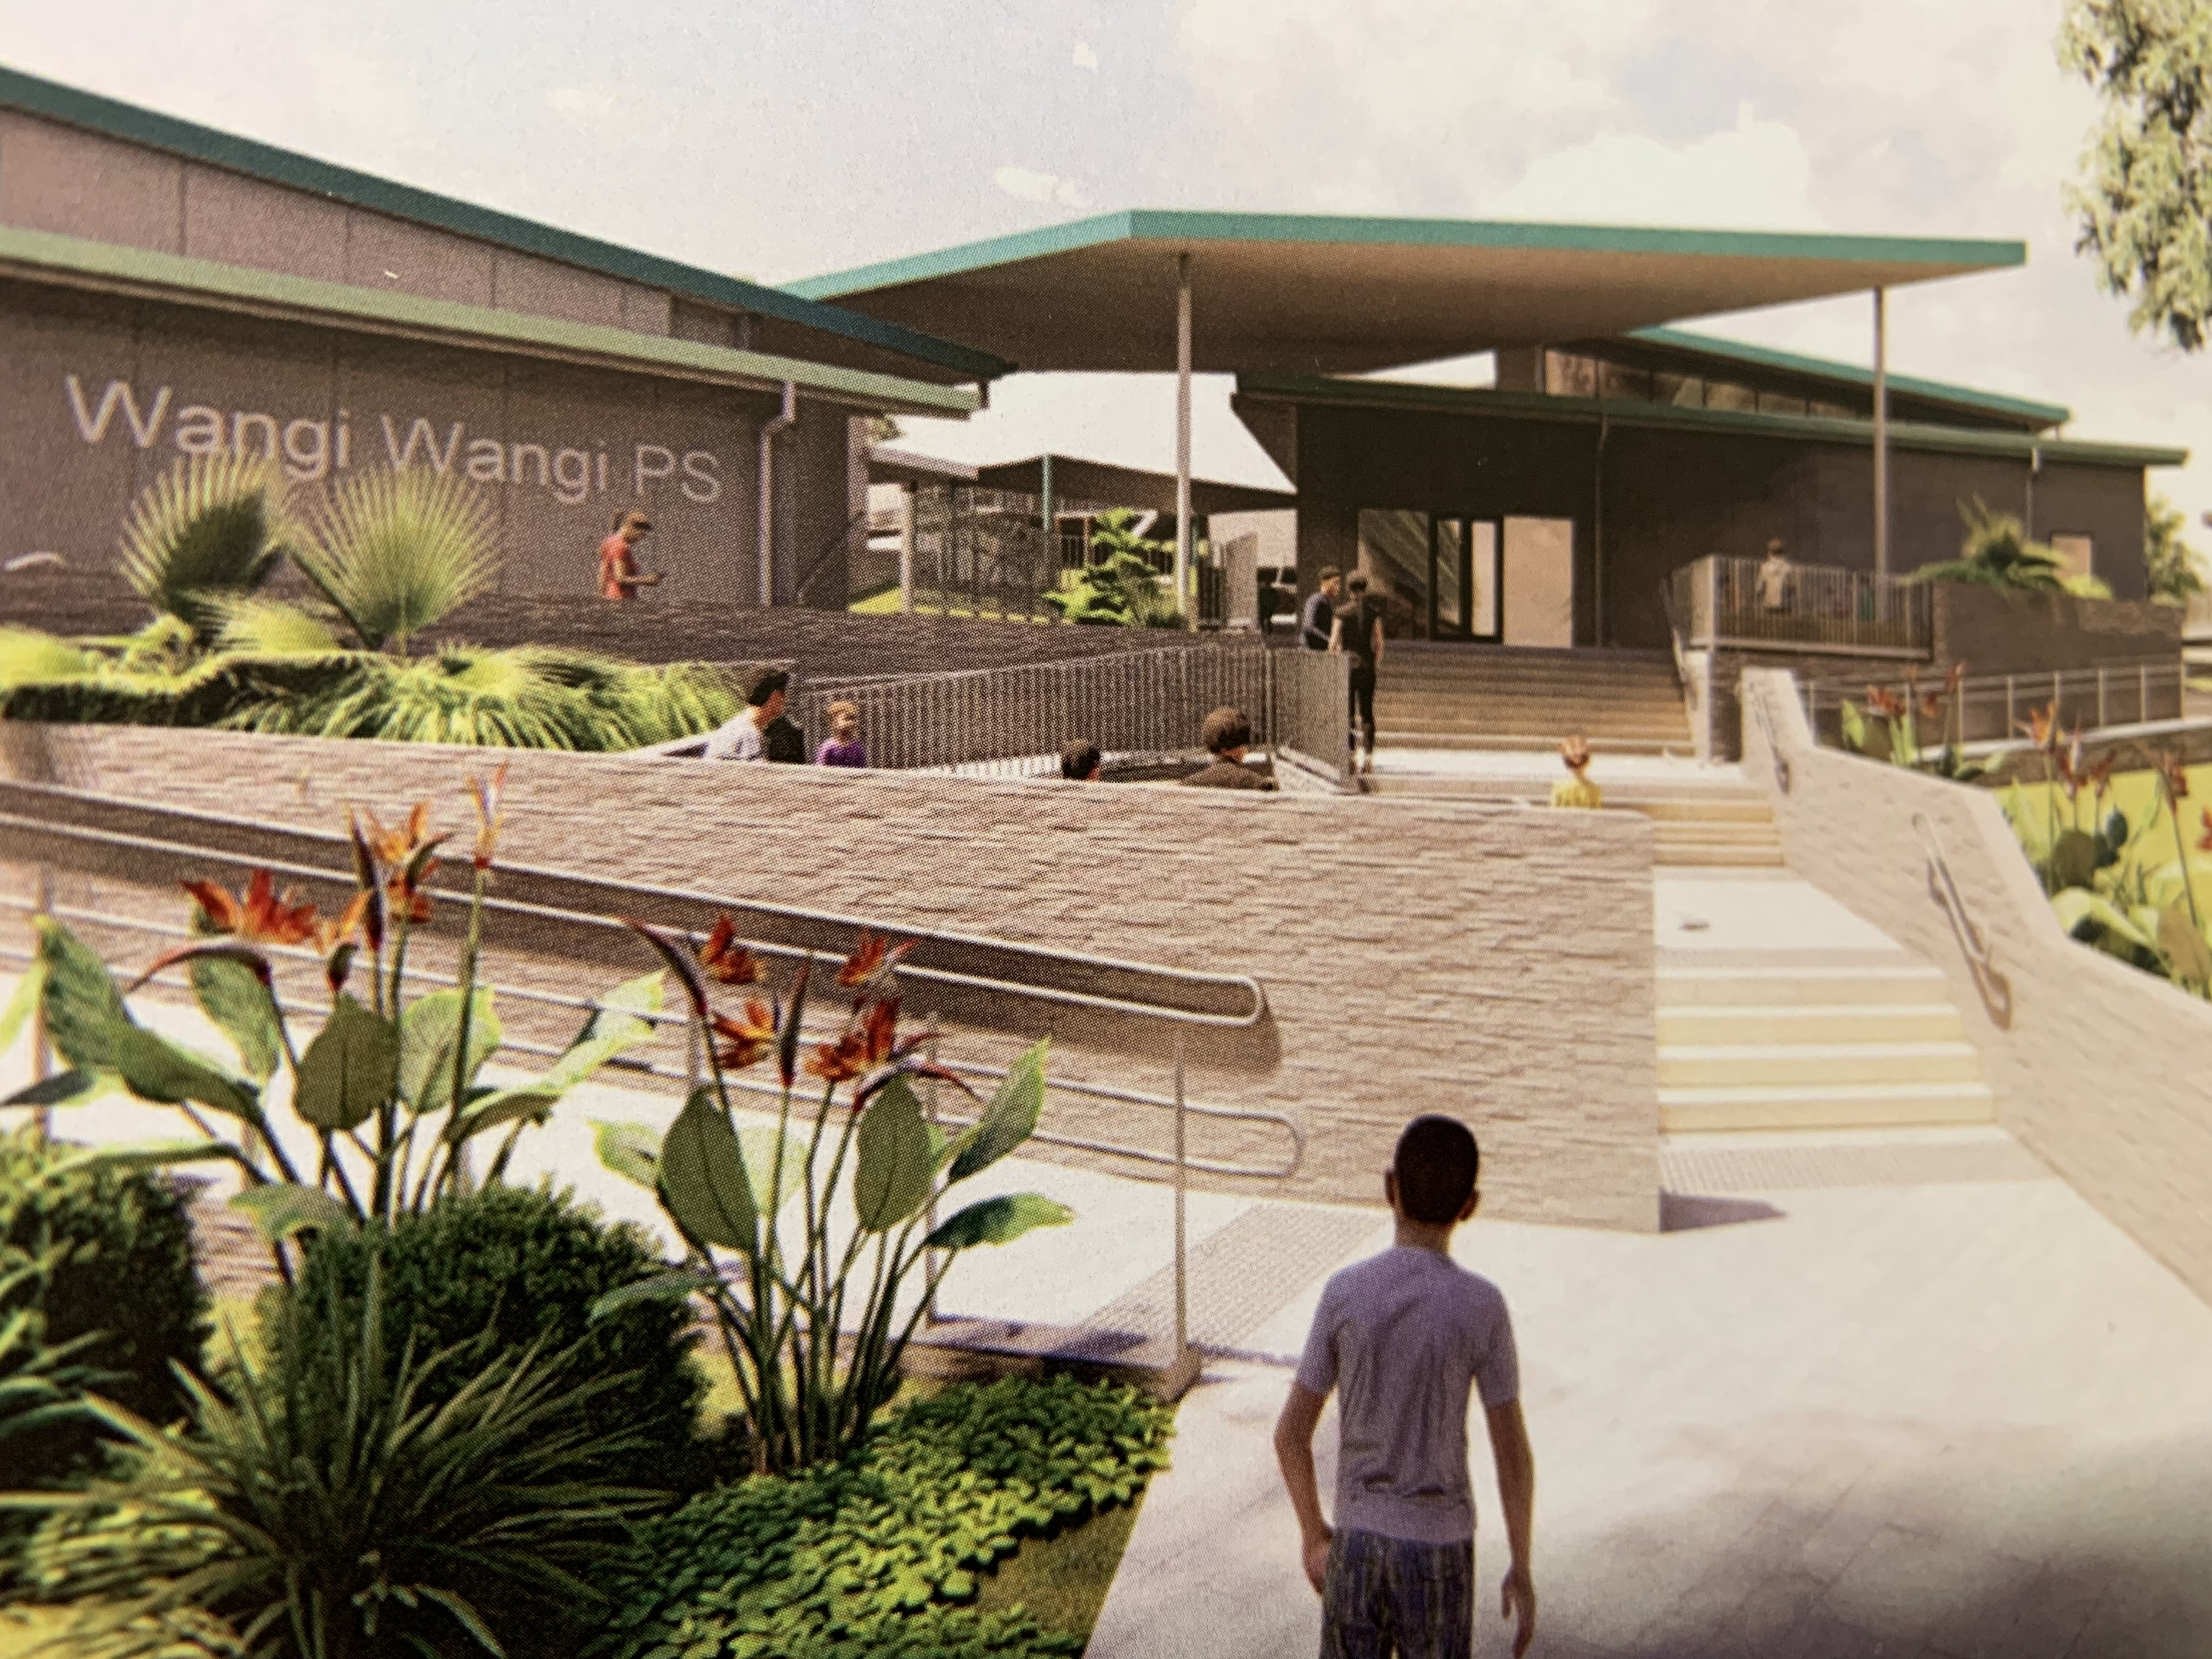 Very excited to report that construction work is about to start on the major upgrades of Wangi Wangi and Speers Point public schools.